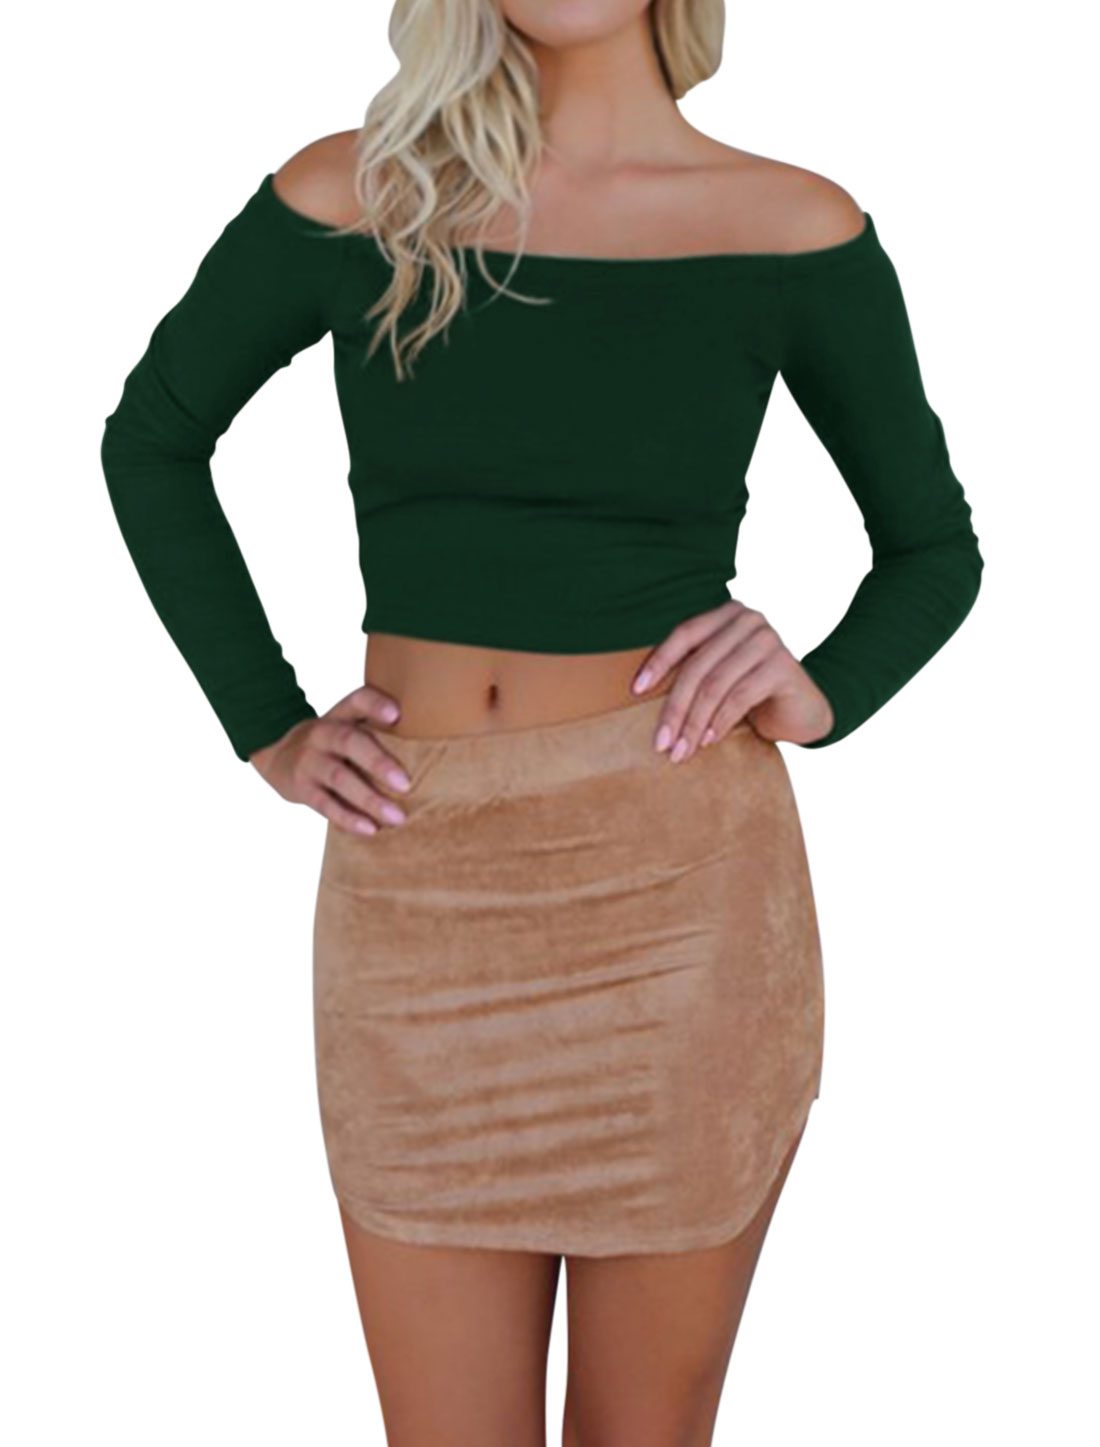 Women Off Shoulder Long Sleeves Ribbed Slim Fit Cropped Top Green M